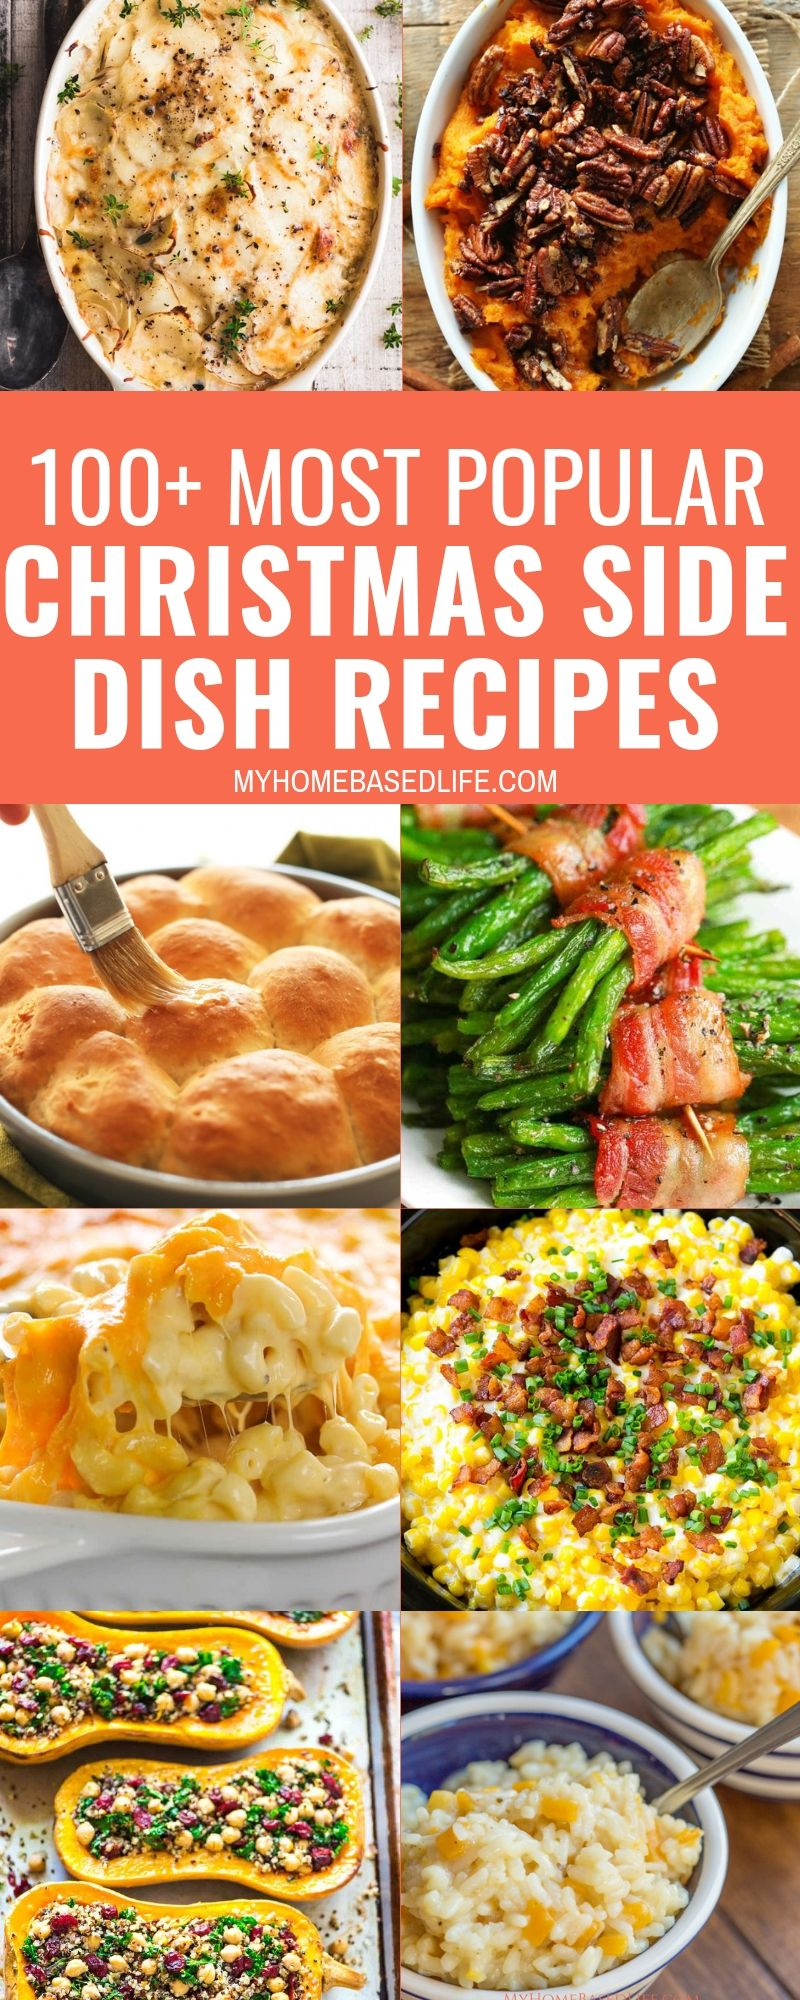 Some of the best and most popular Christmas Side Dishes are right here! Over 100 recipes to make your holiday meal top notch this year. #Christmas #sidedish #recipe #myhomebasedlife | Christmas Side Dishes | Christmas | Side Dish Recipes | Christmas Dinner |  via @myhomebasedlife #chickensidedishes